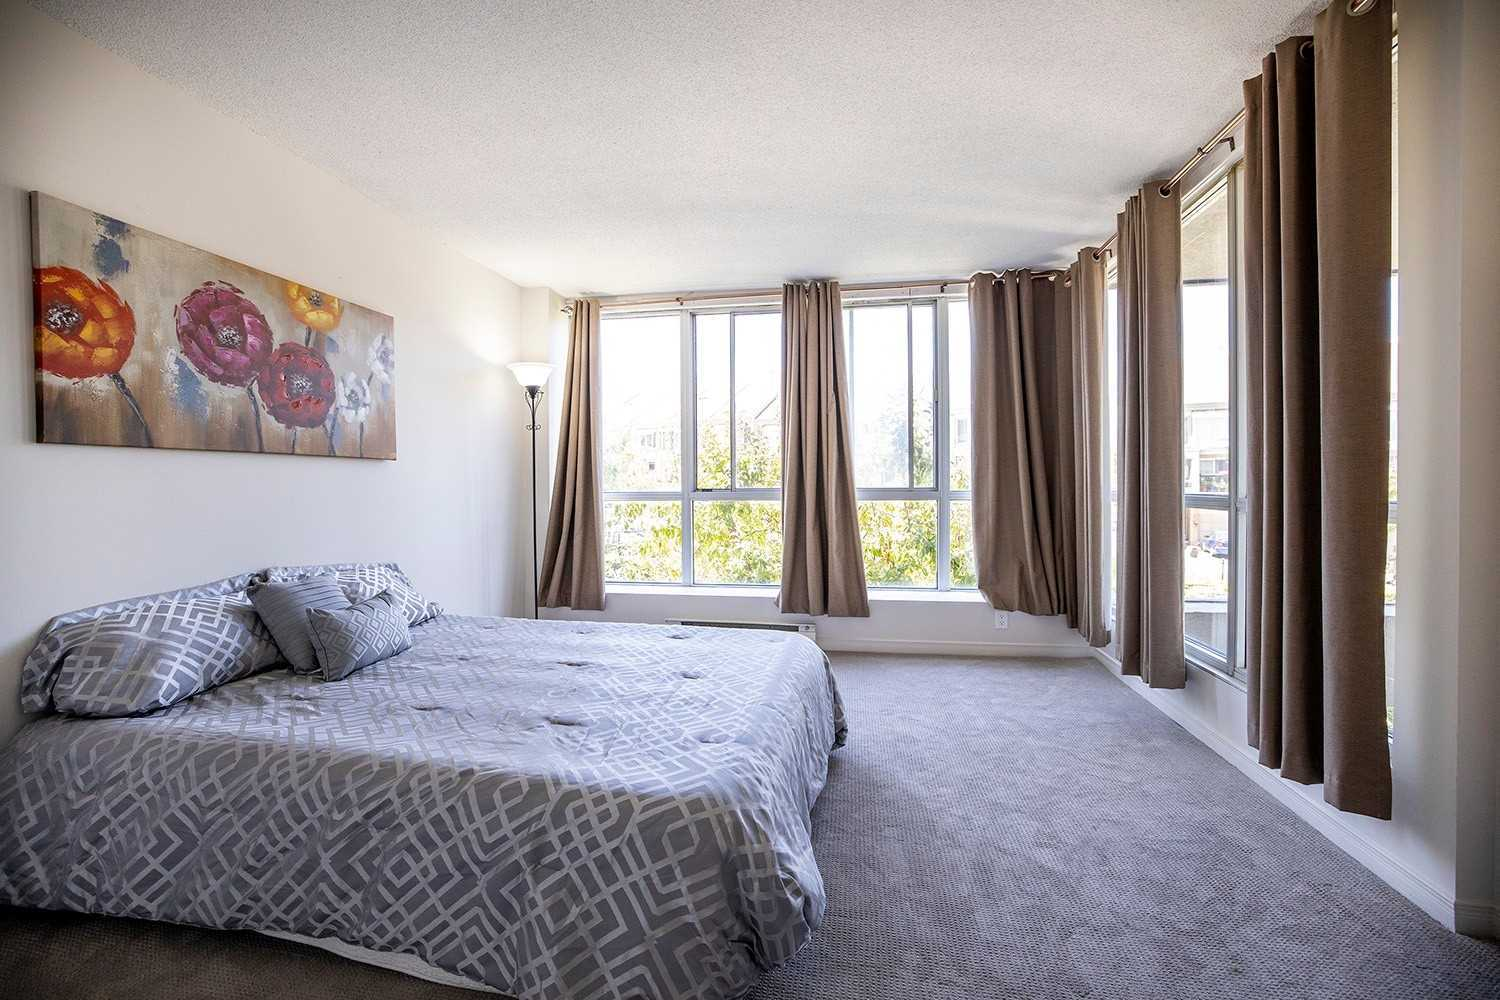 Image 3 of 20 showing inside of 2 Bedroom Condo Apt 2-Storey for Sale at 25 Cumberland Lane Unit# 112, Ajax L1S7K1